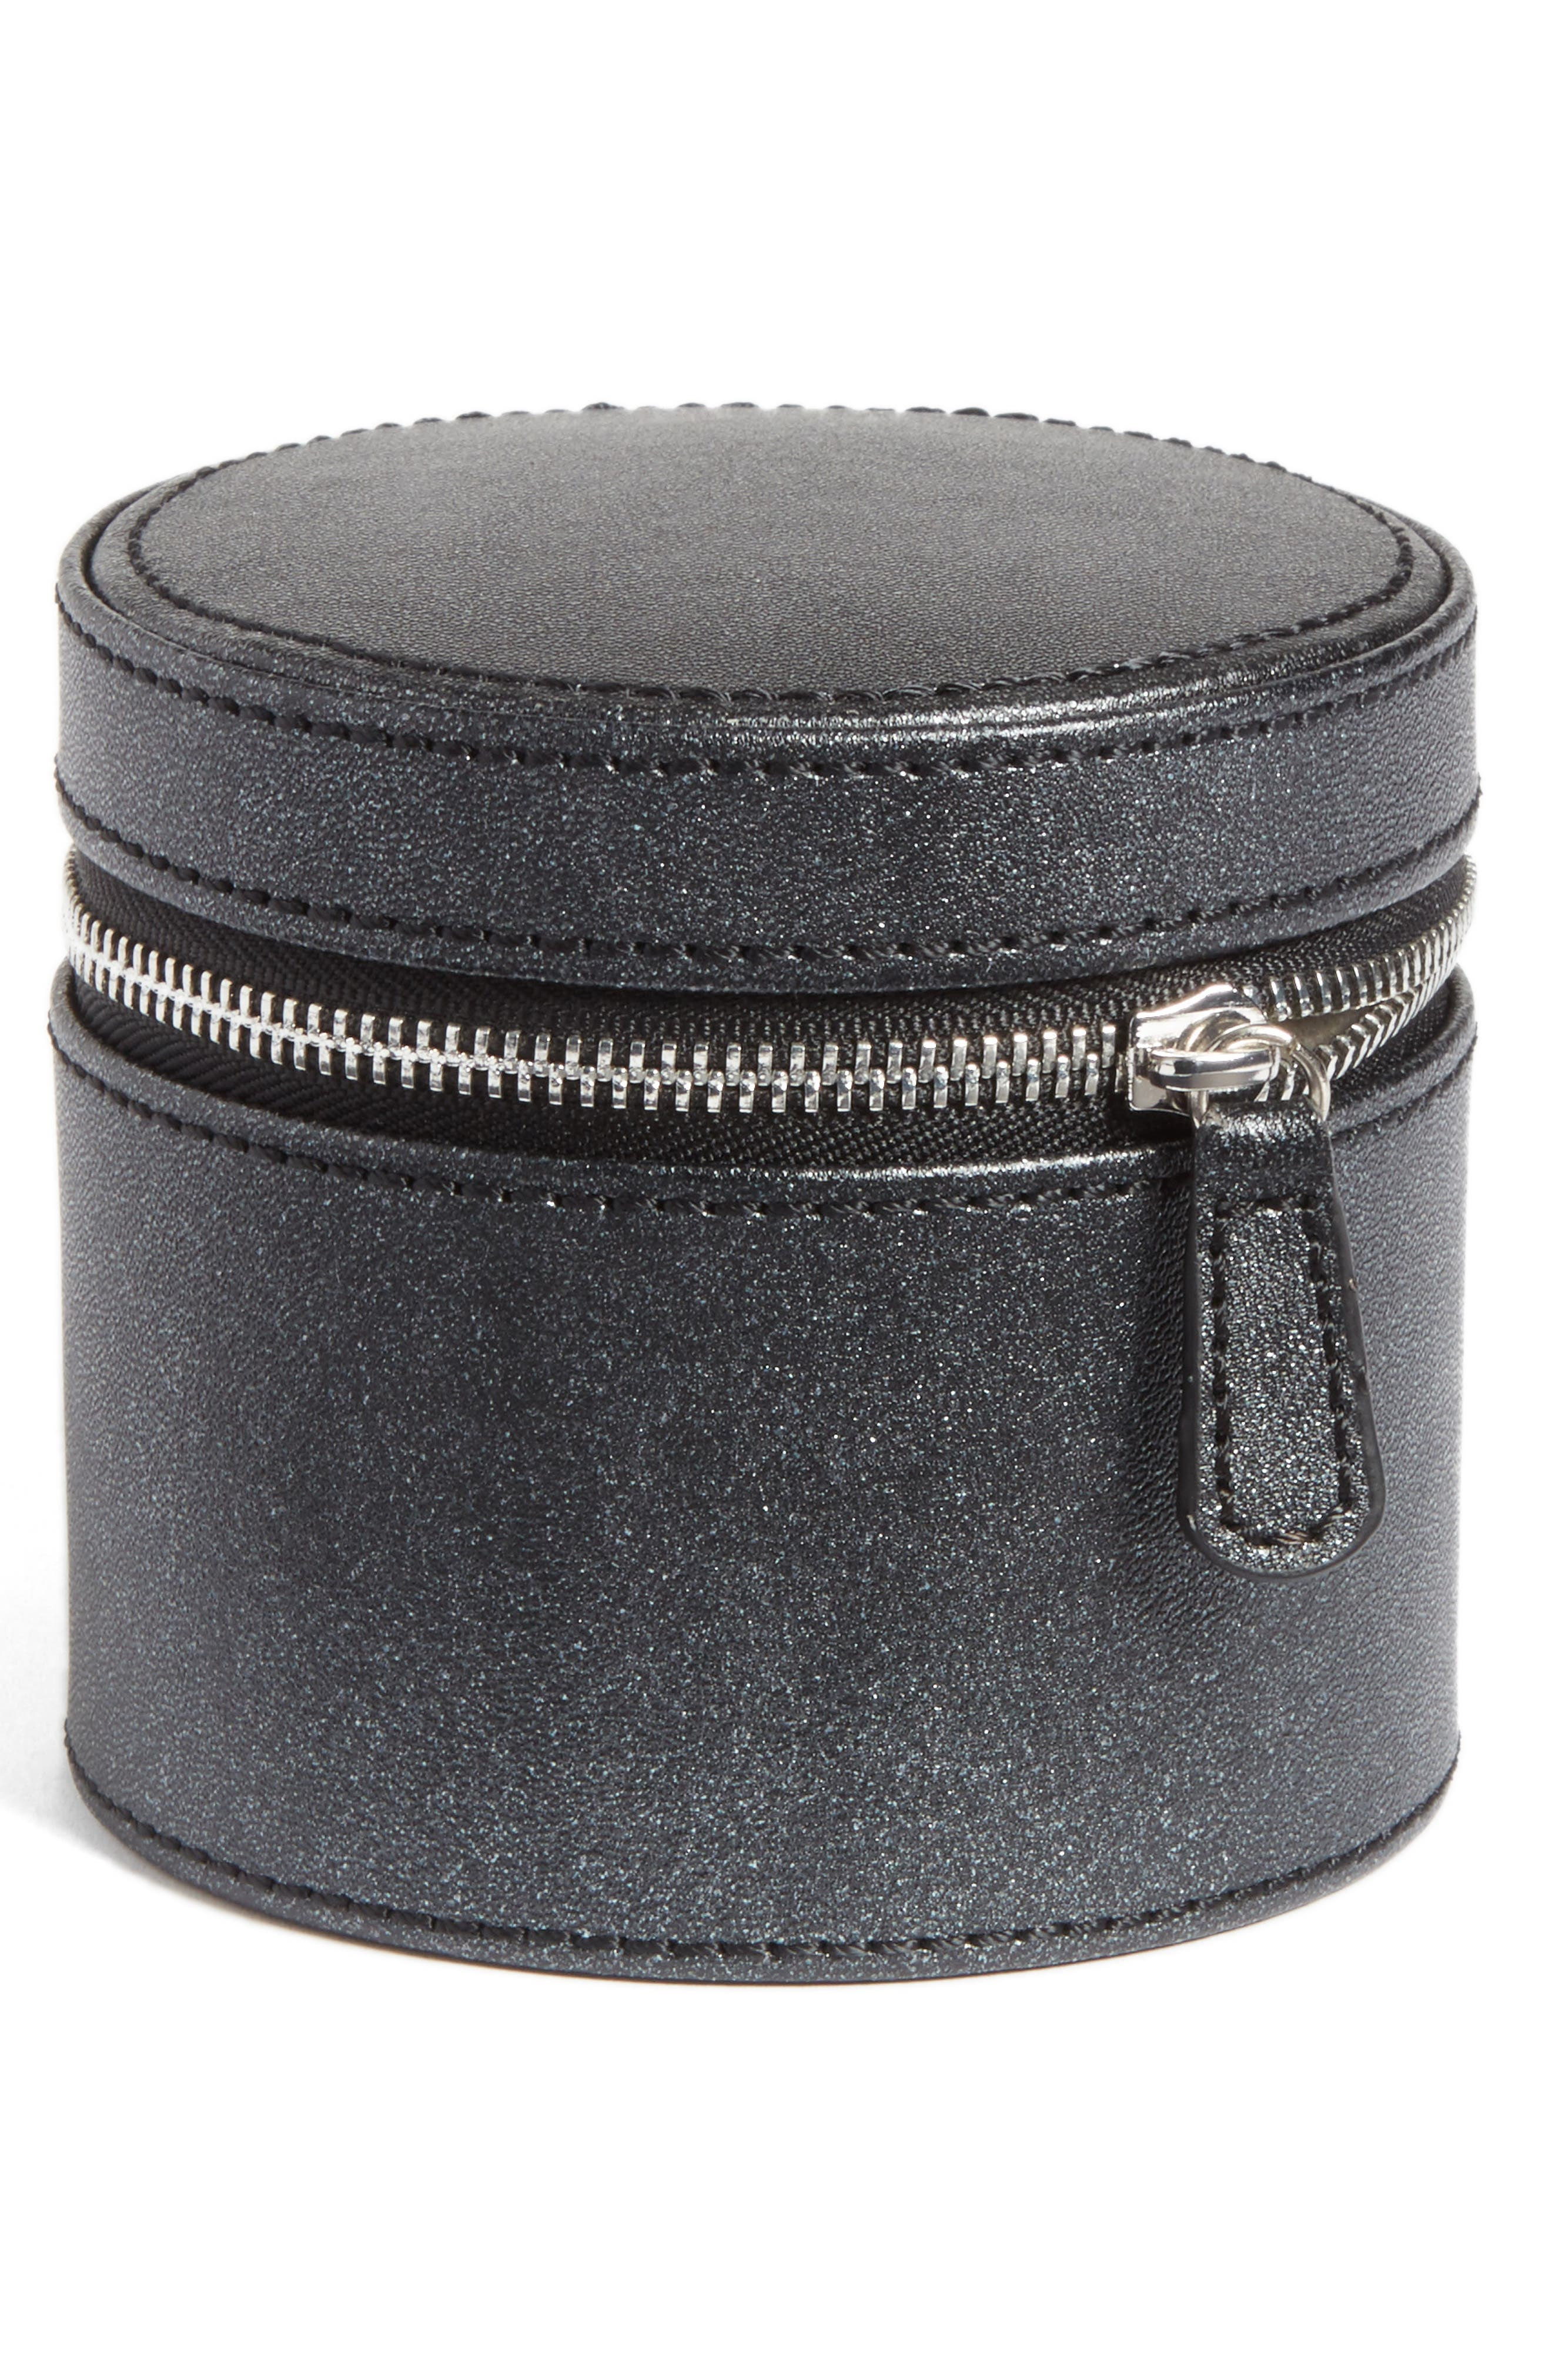 Small Round Zippered Jewelry Case,                             Main thumbnail 1, color,                             Black